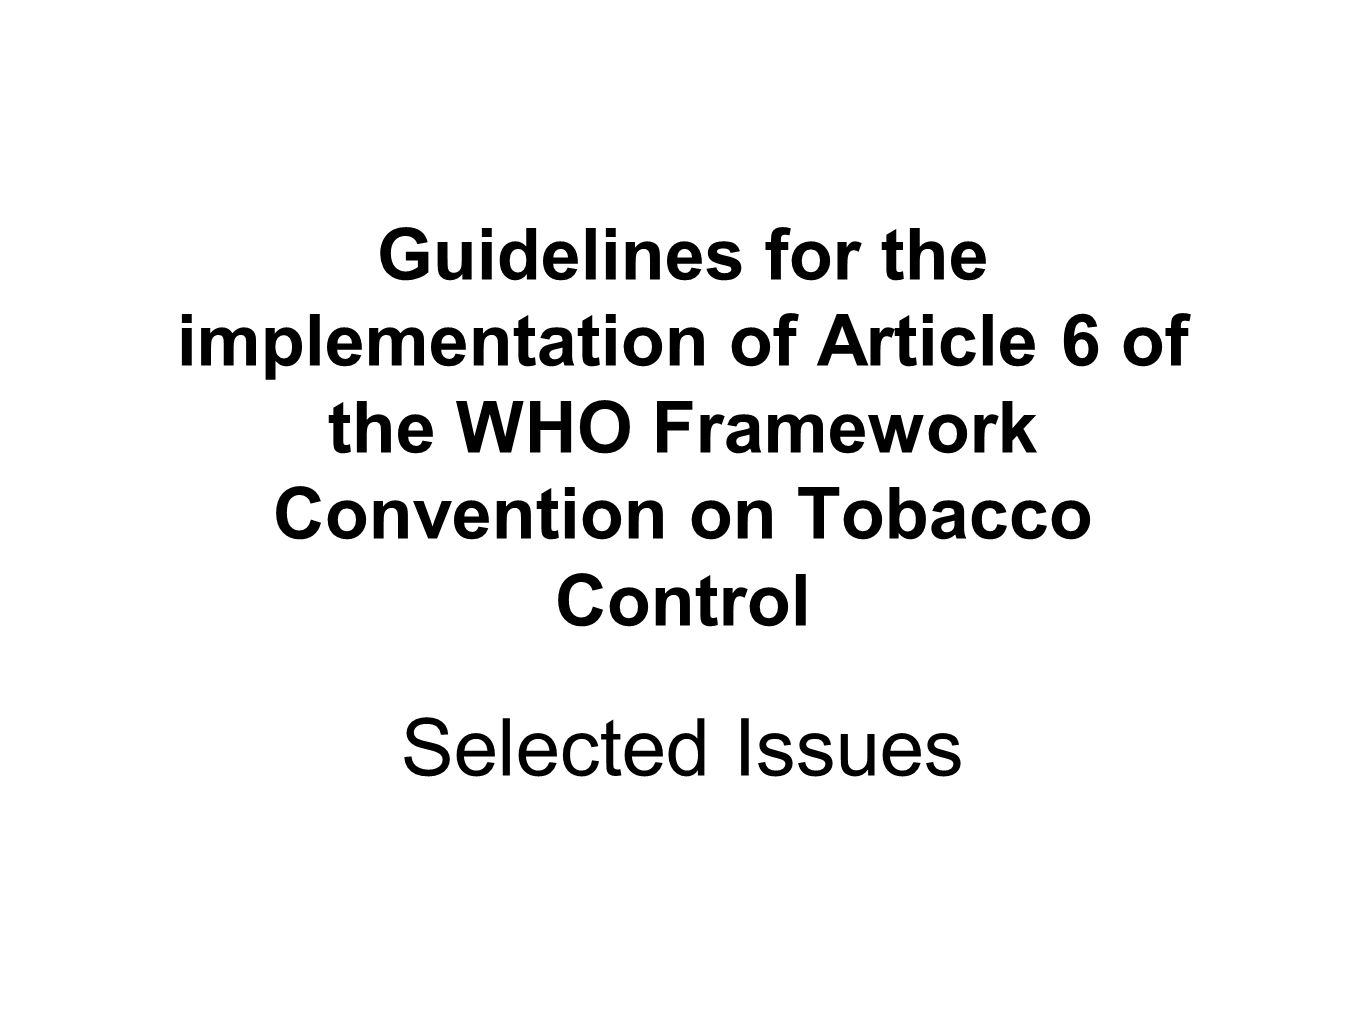 Guidelines for the implementation of Article 6 of the WHO Framework Convention on Tobacco Control